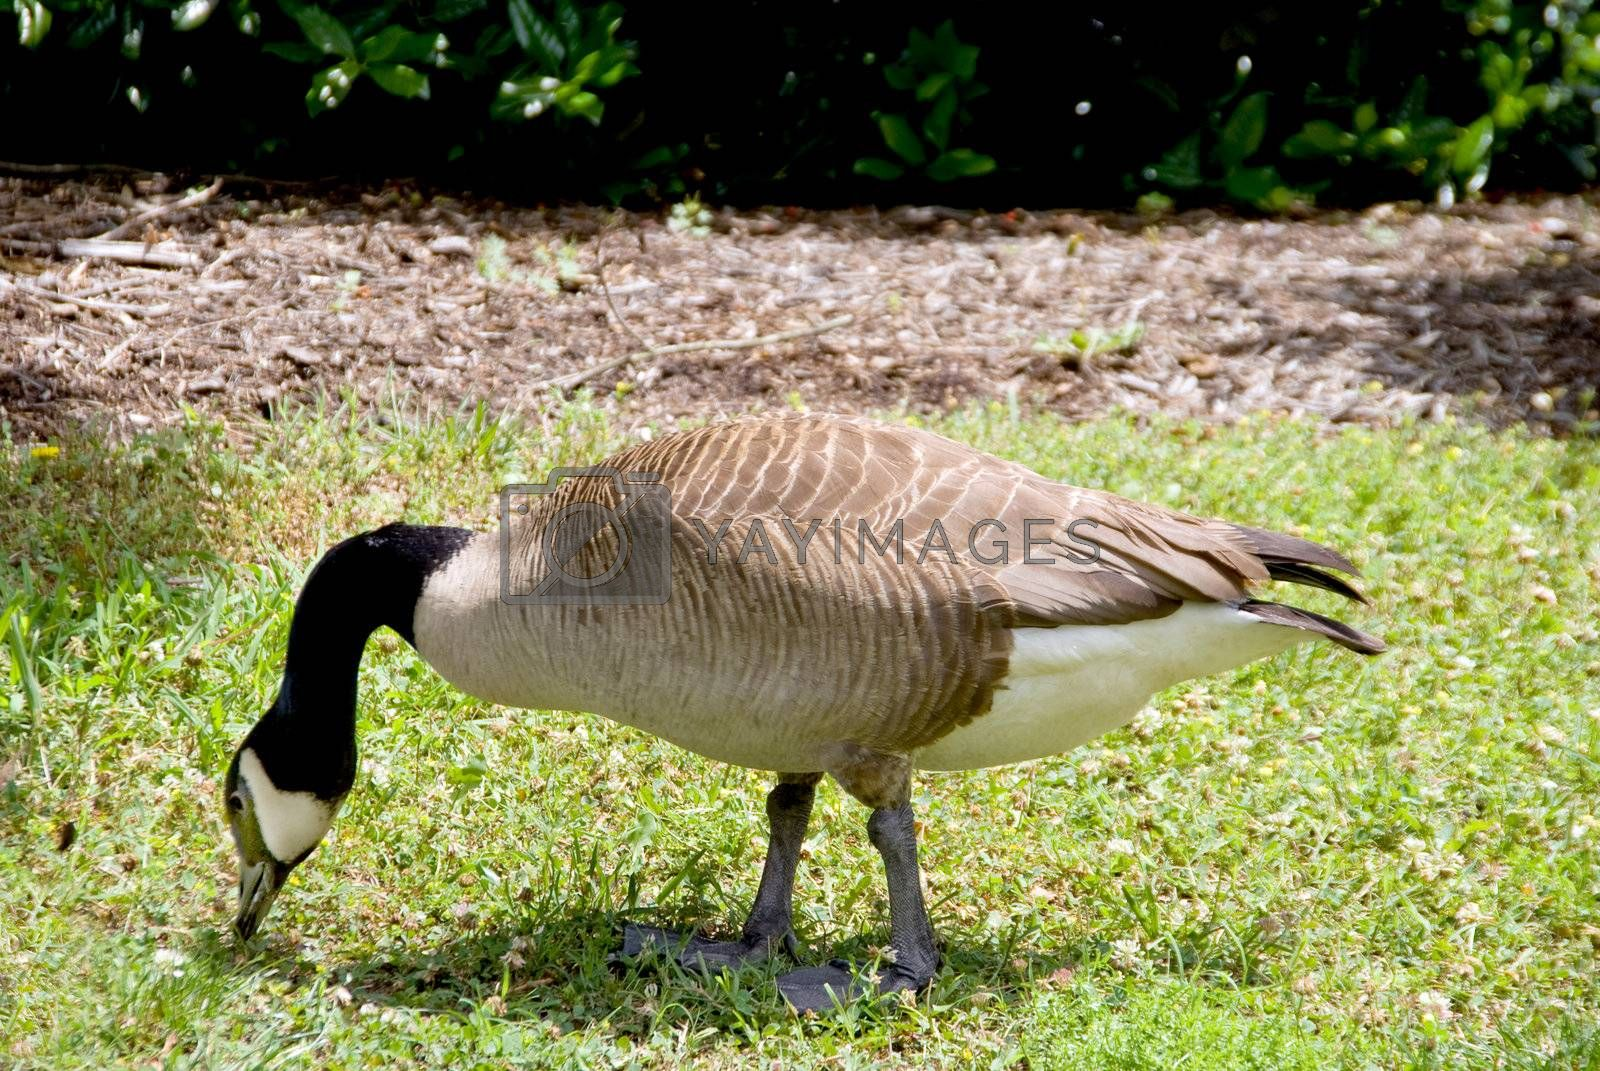 A Canadian Goose grazing on a grassy lawn.